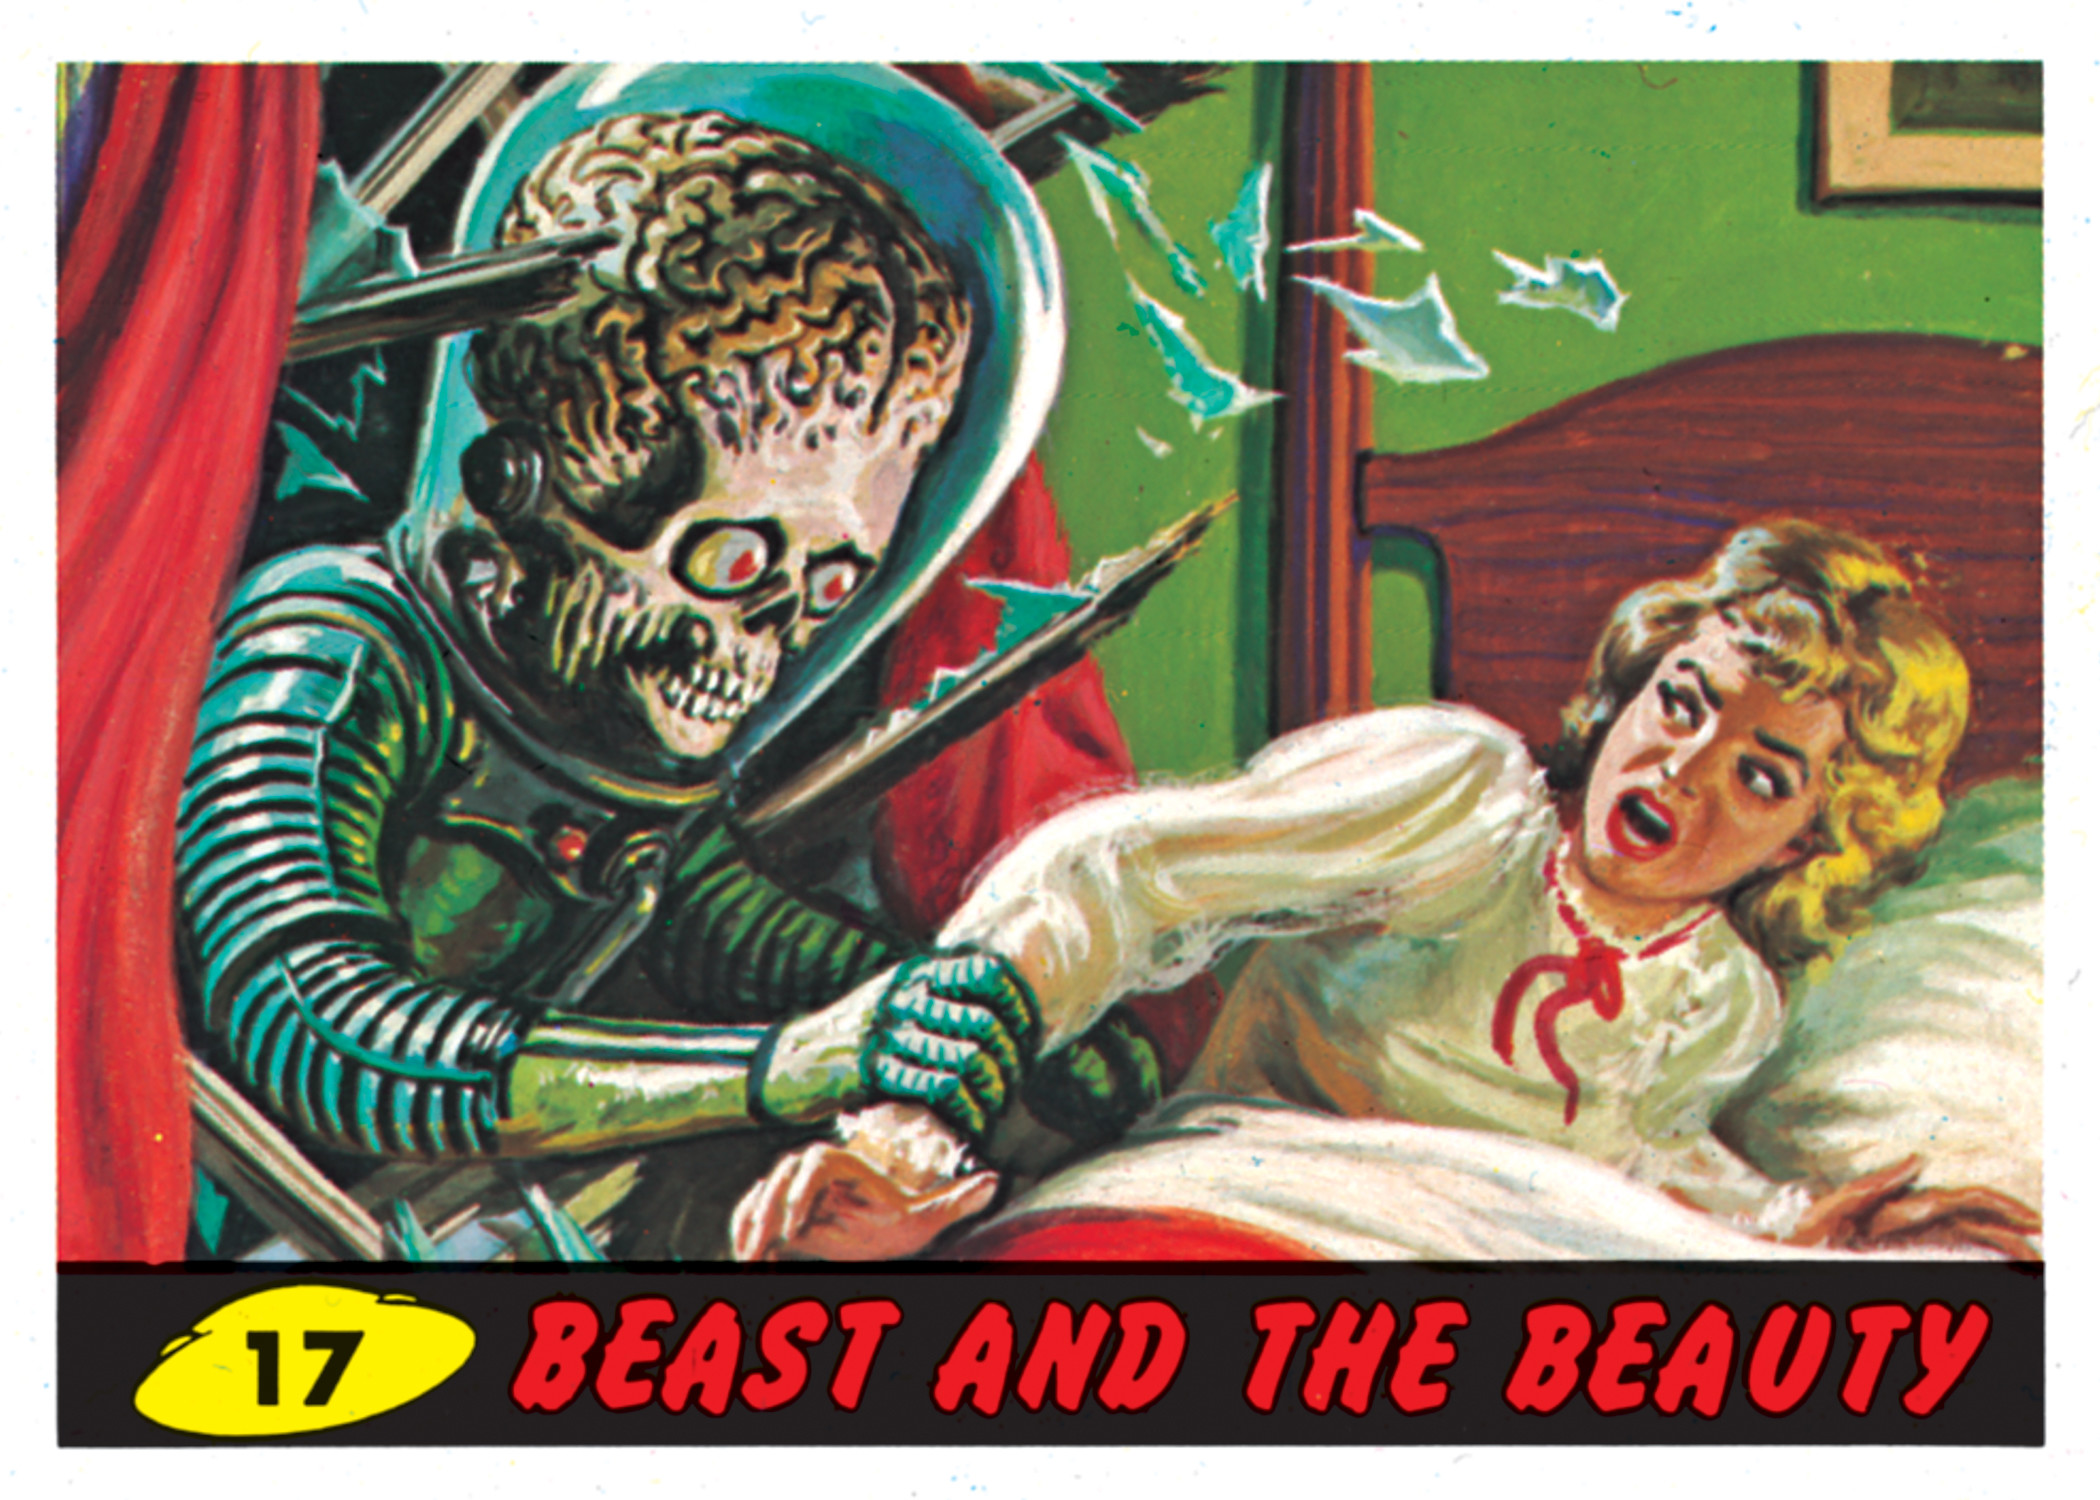 Mars Attacks Co Creator Len Brown Looks Back On The Influential